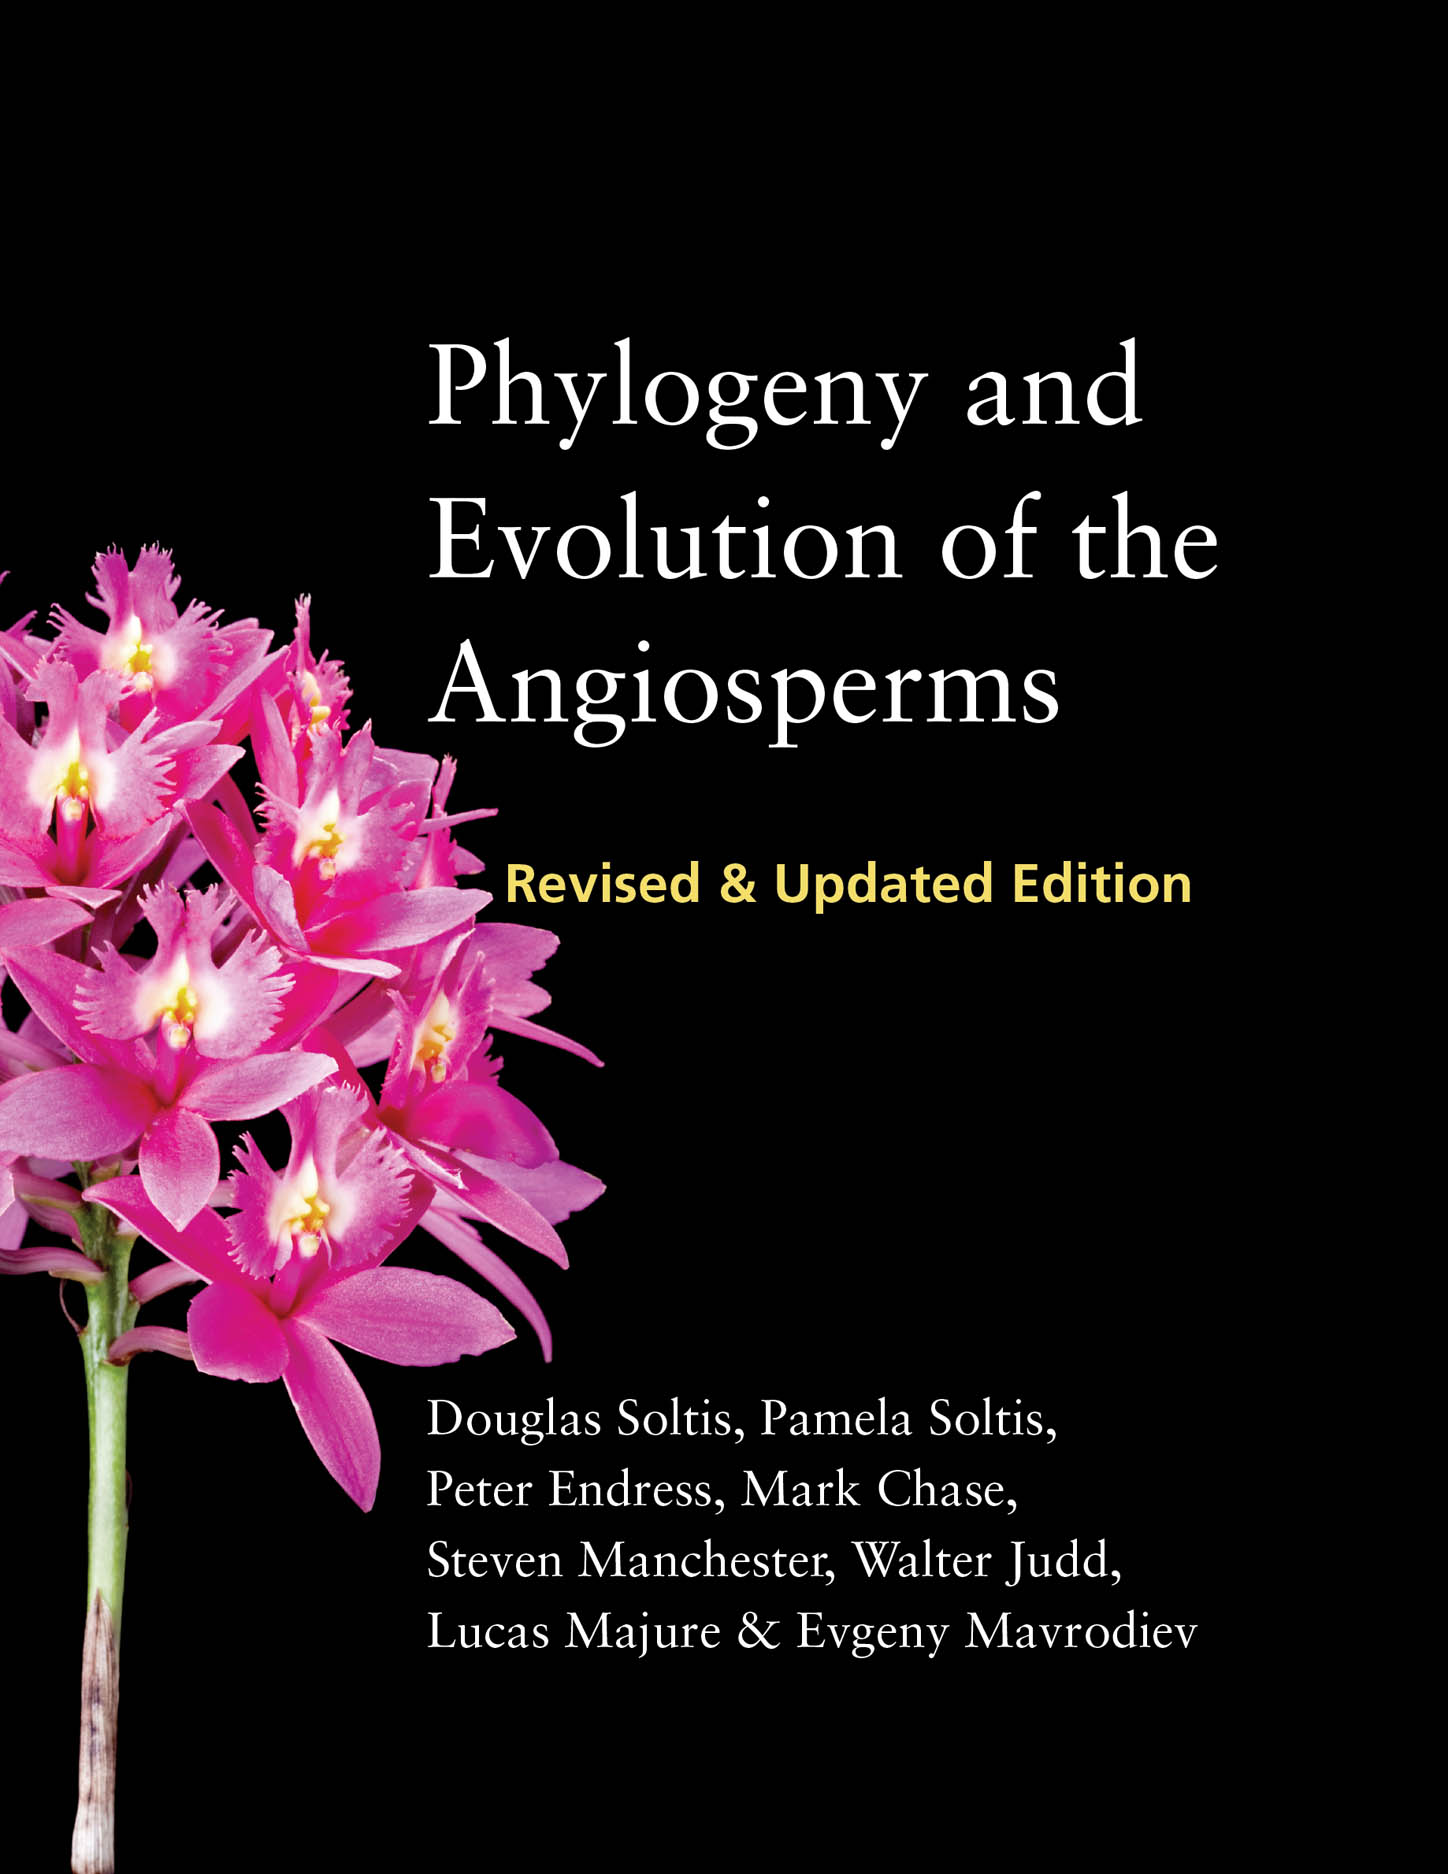 Phylogeny and Evolution of the Angiosperms: Revised and Updated Edition